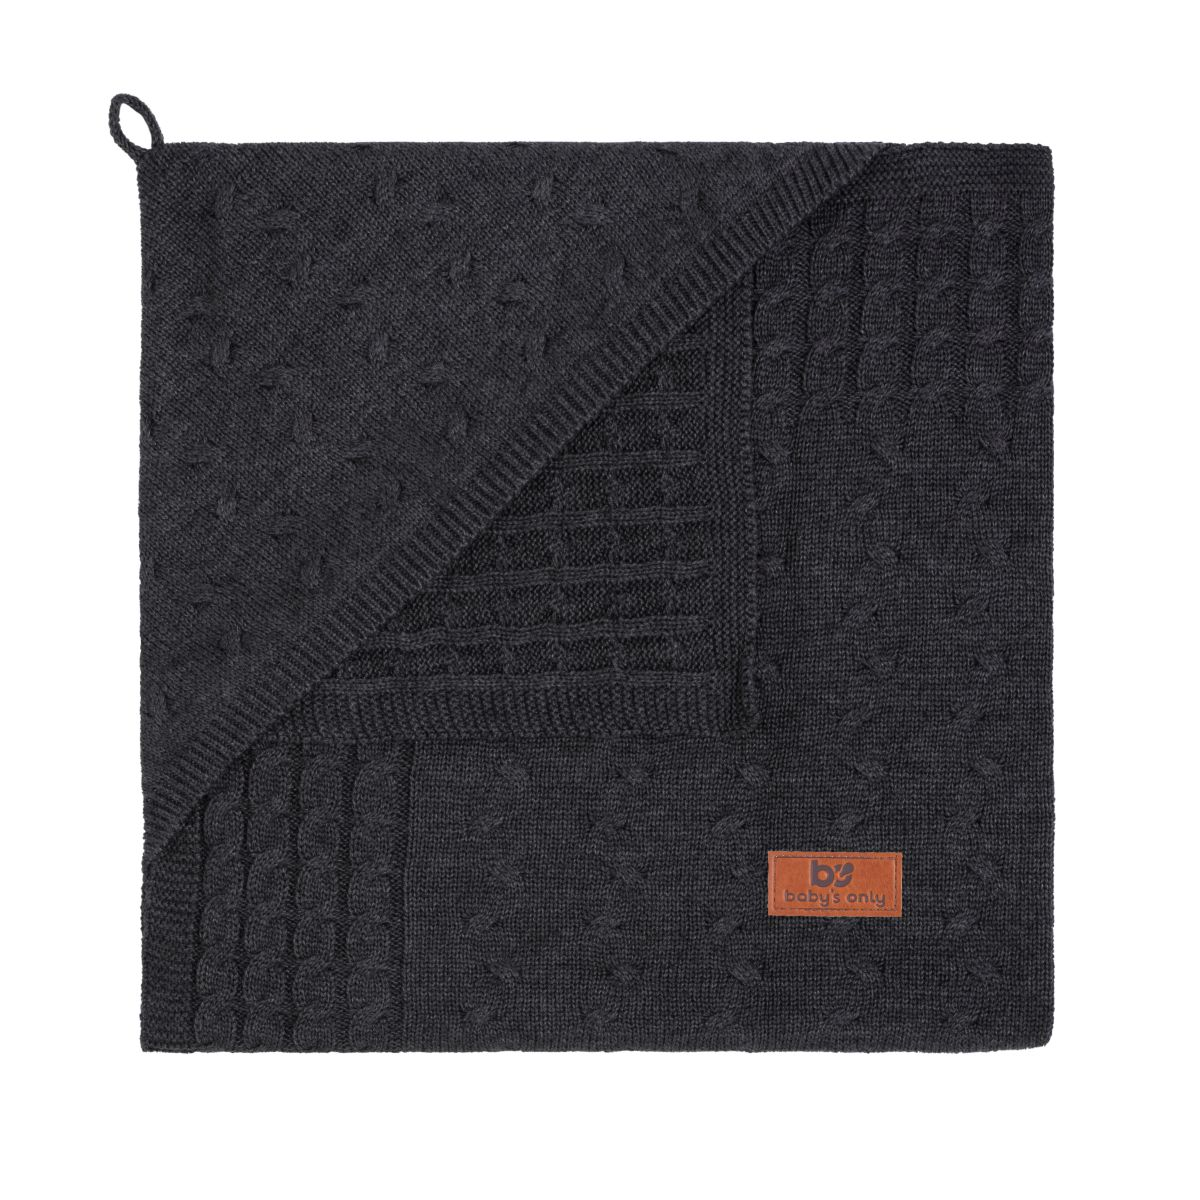 babys only 0132424 omslagdoek uni cable antraciet